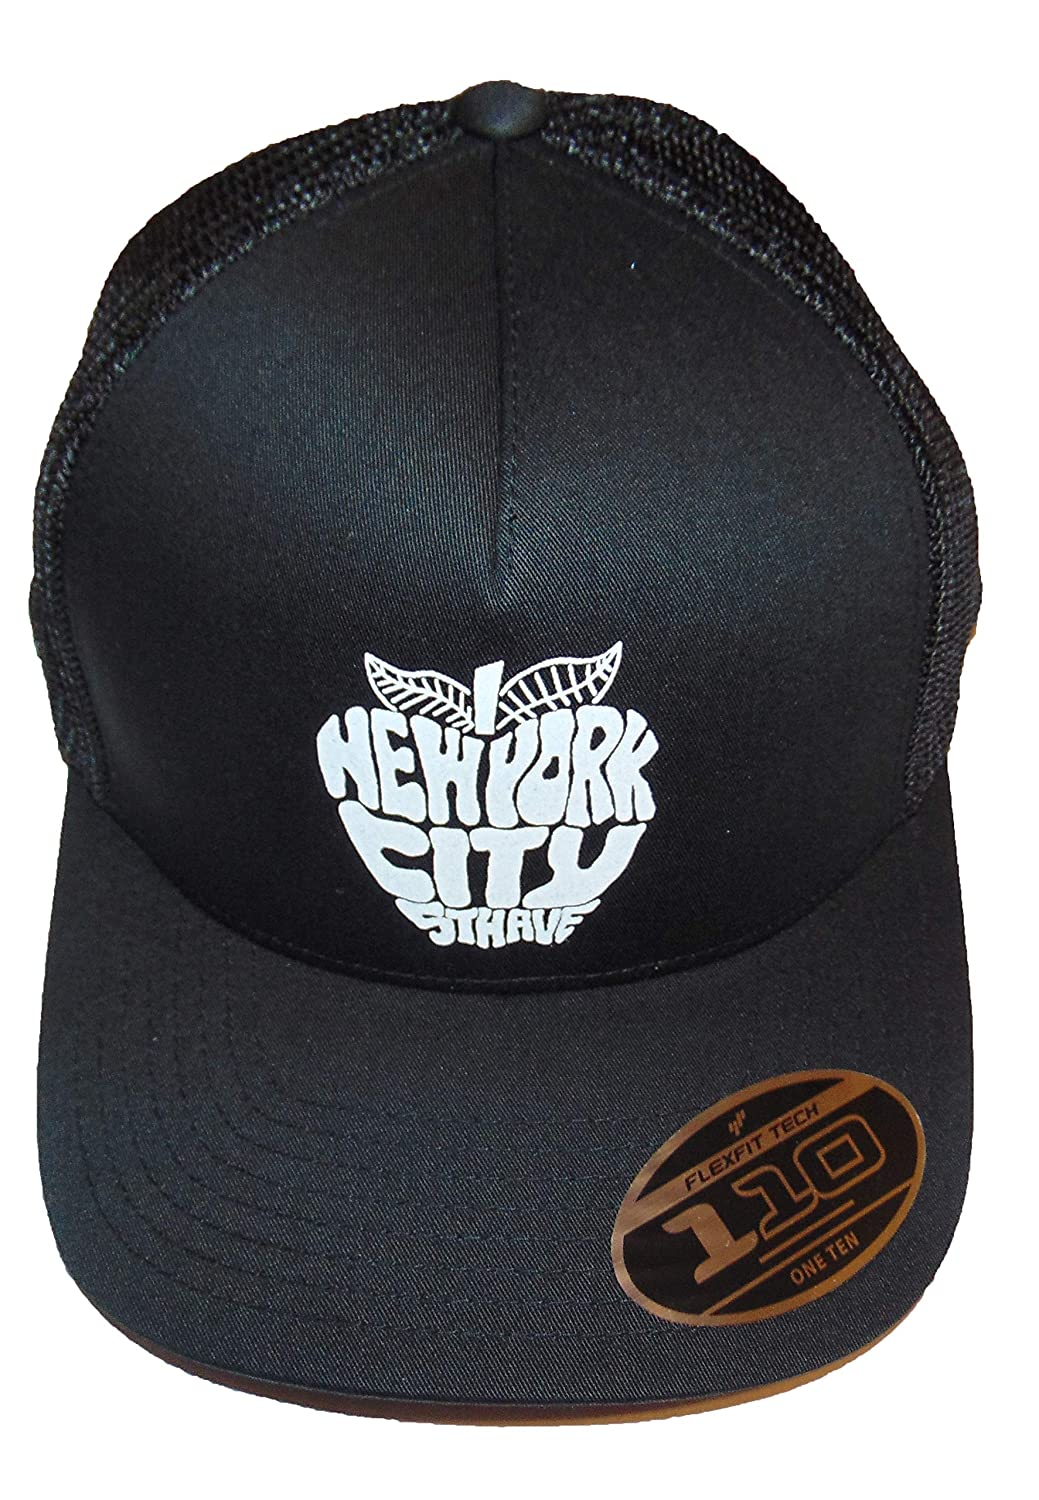 9c390a1af5f Amazon.com  The North Face Men s New York City 5th Ave Baseball Cap Mesh  Back  Sports   Outdoors